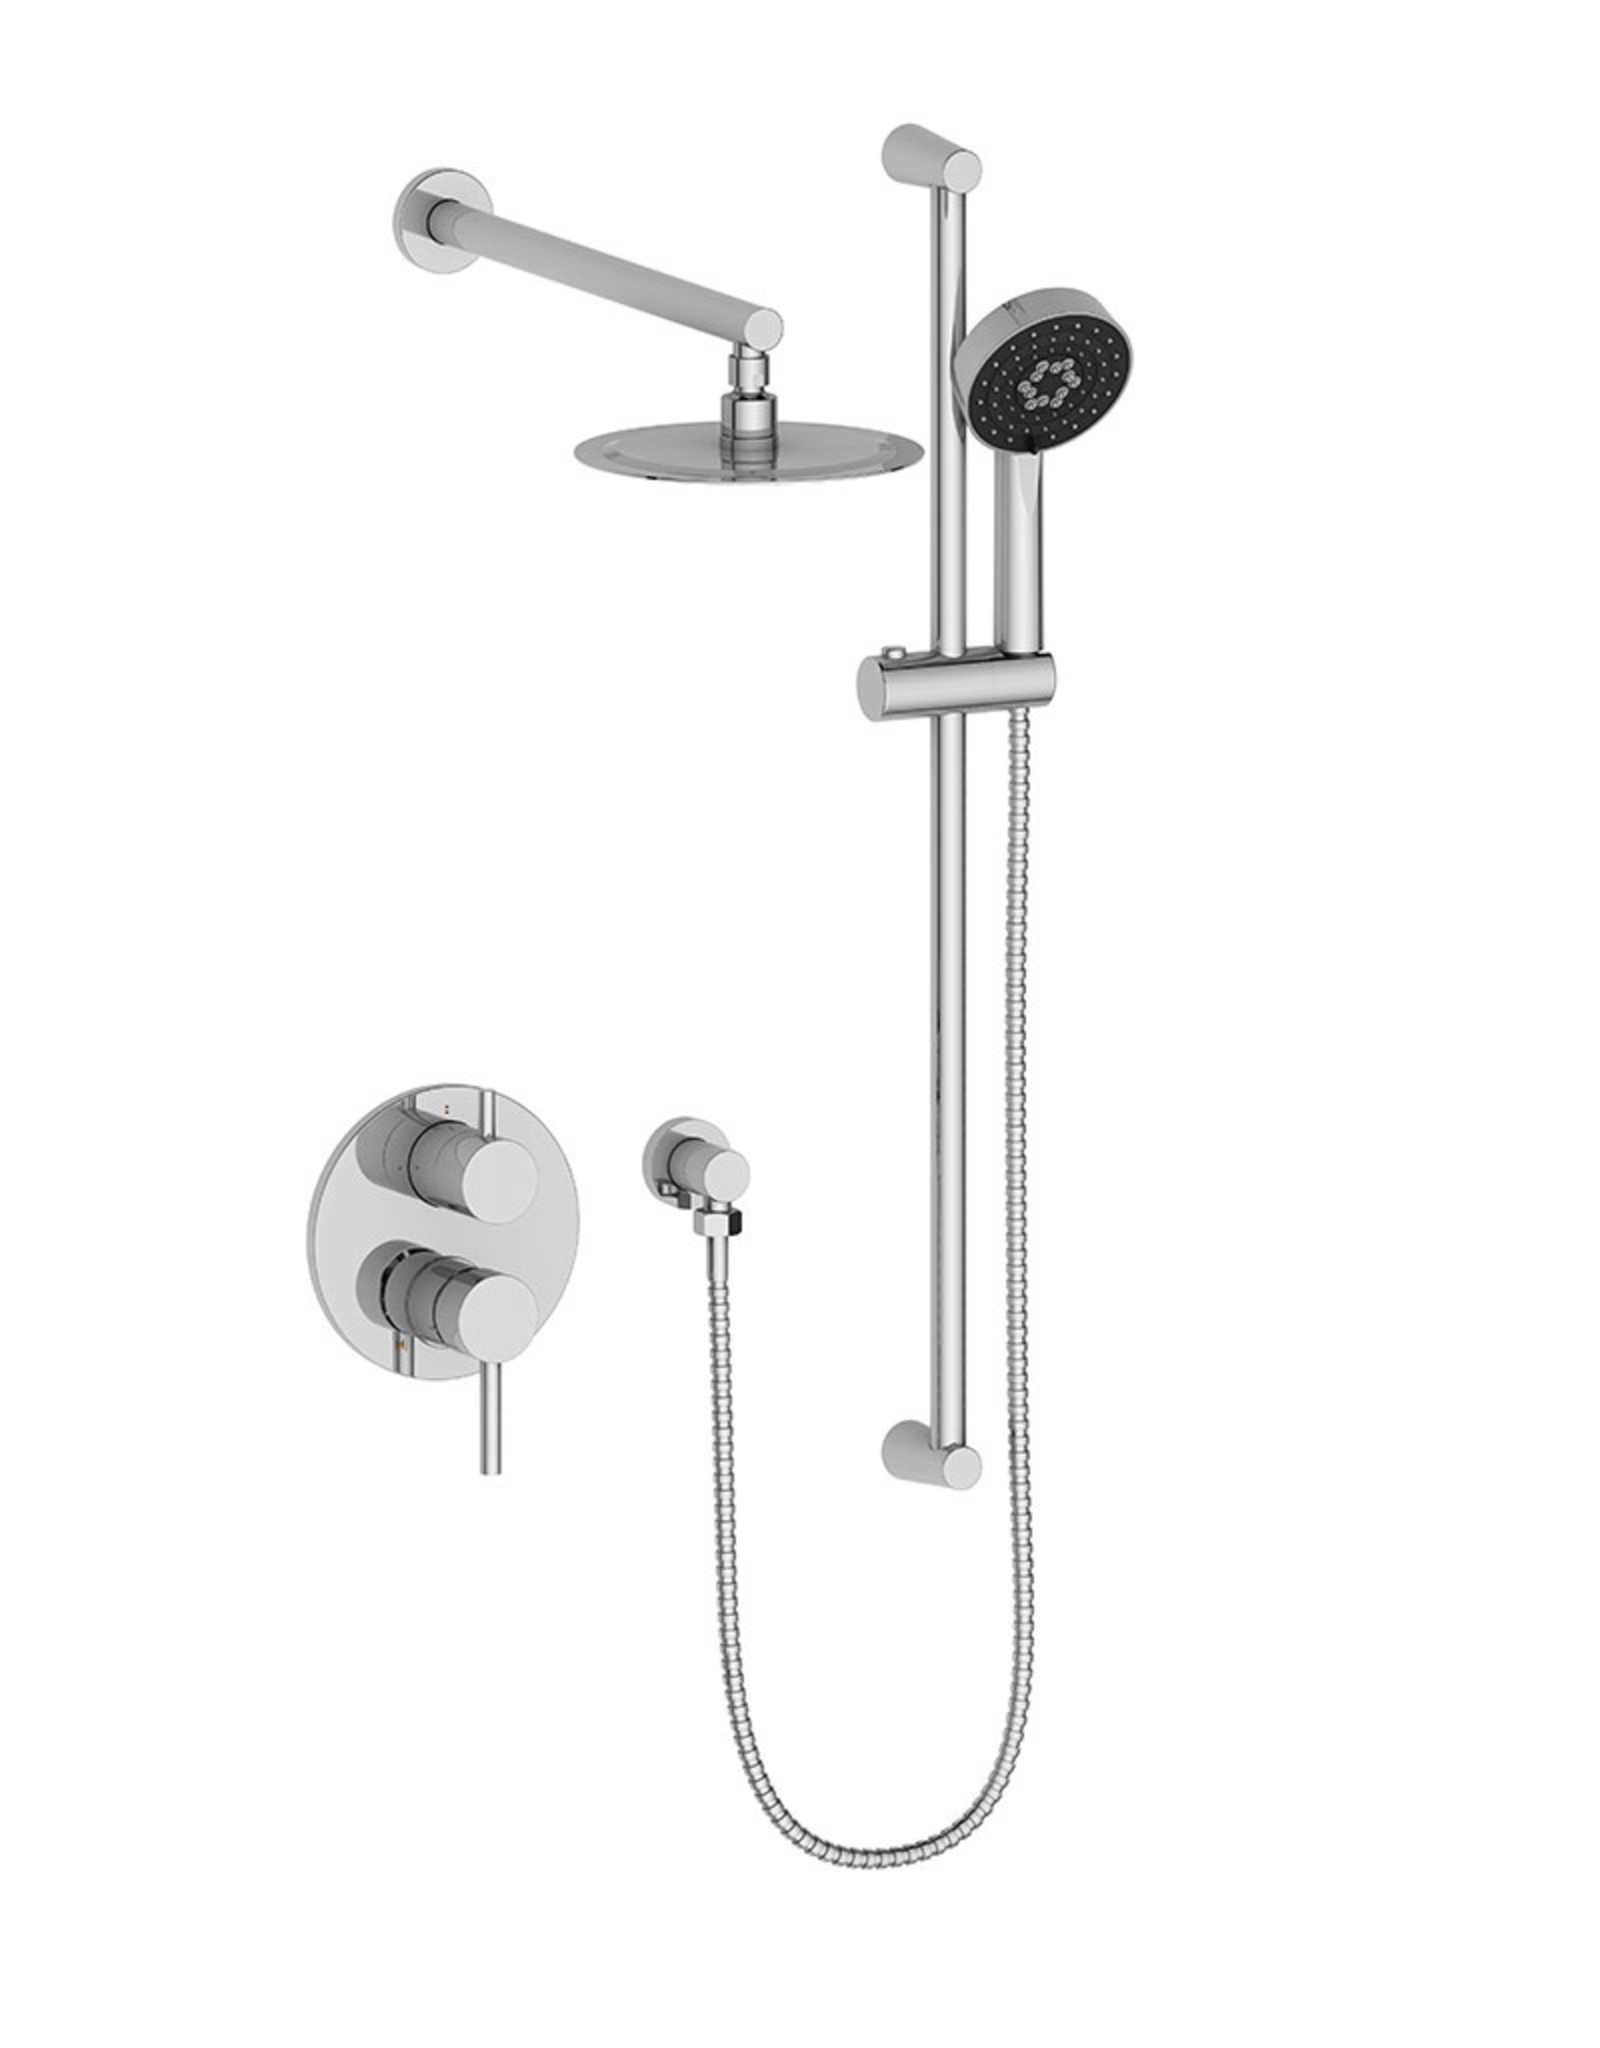 Vogt VOGT WORGL - 2-WAY PRESSURE BALANCED SHOWER KIT CHROME- NO SPOUT